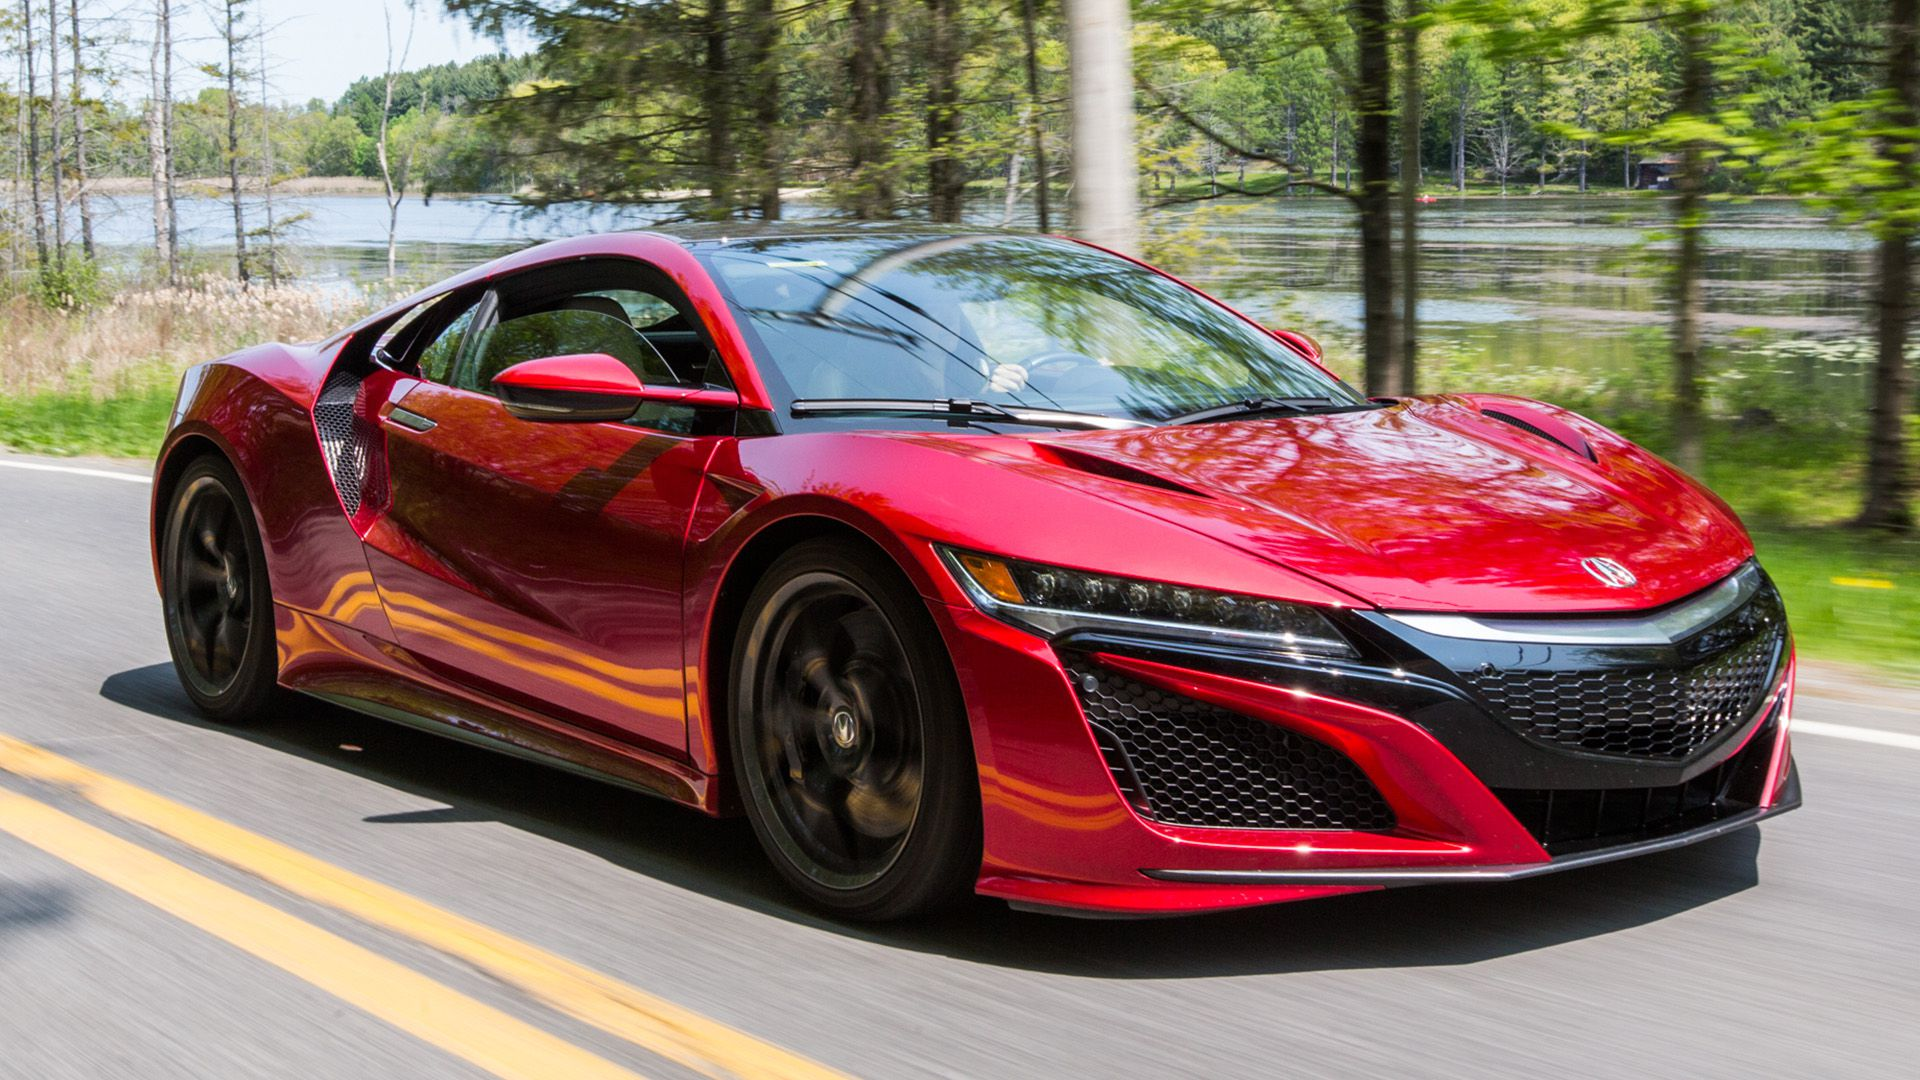 Nsx pricing 2017 acura nsx review a gentler supercar the verge